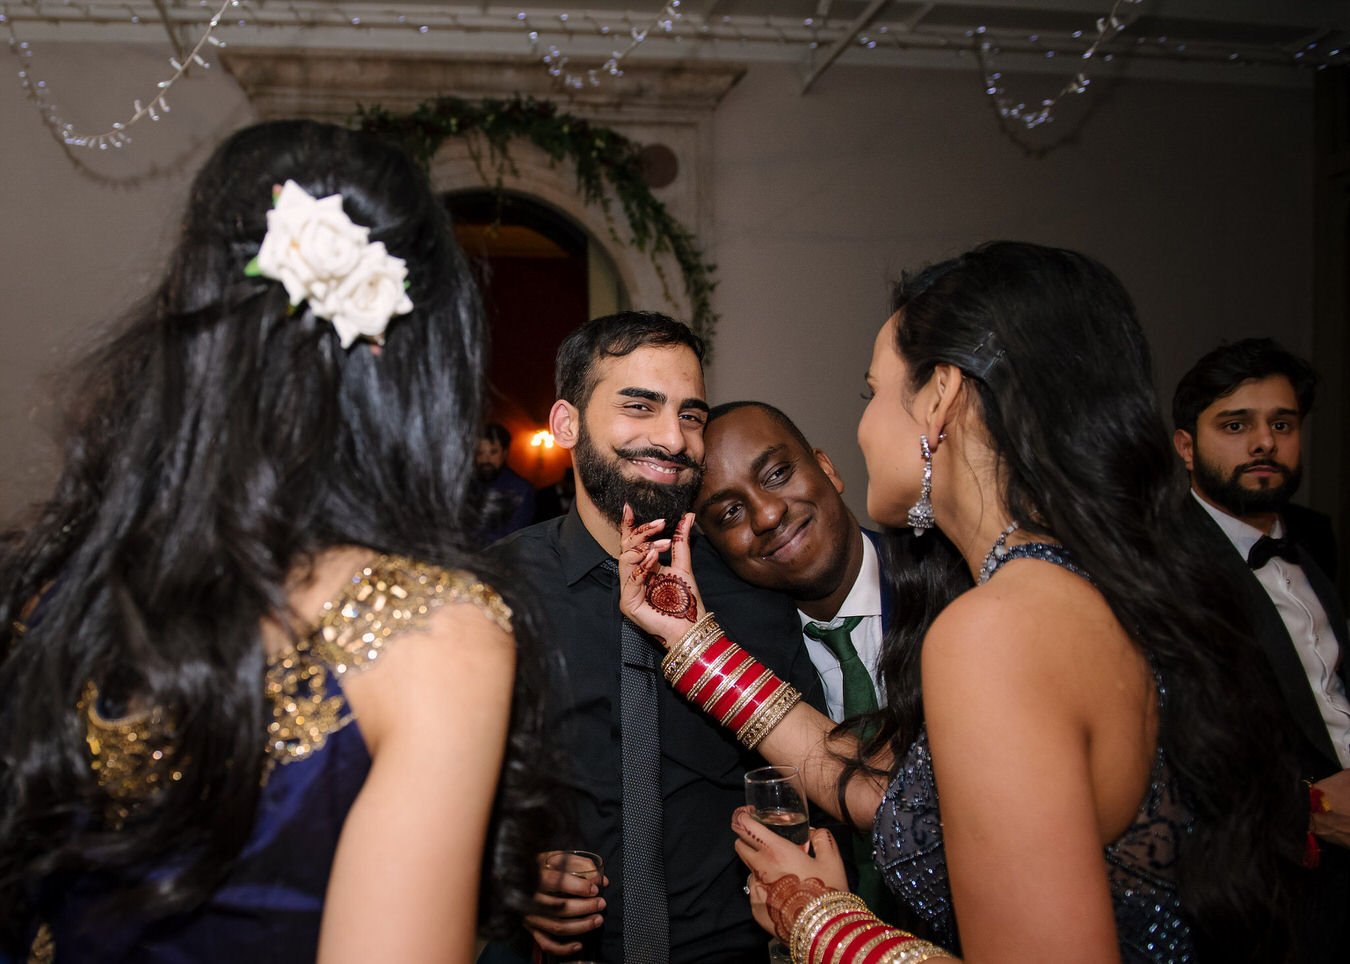 Documentary Asian wedding photographer captures a moment between the bride and one of her friends, the bride is touching her friend's beard.